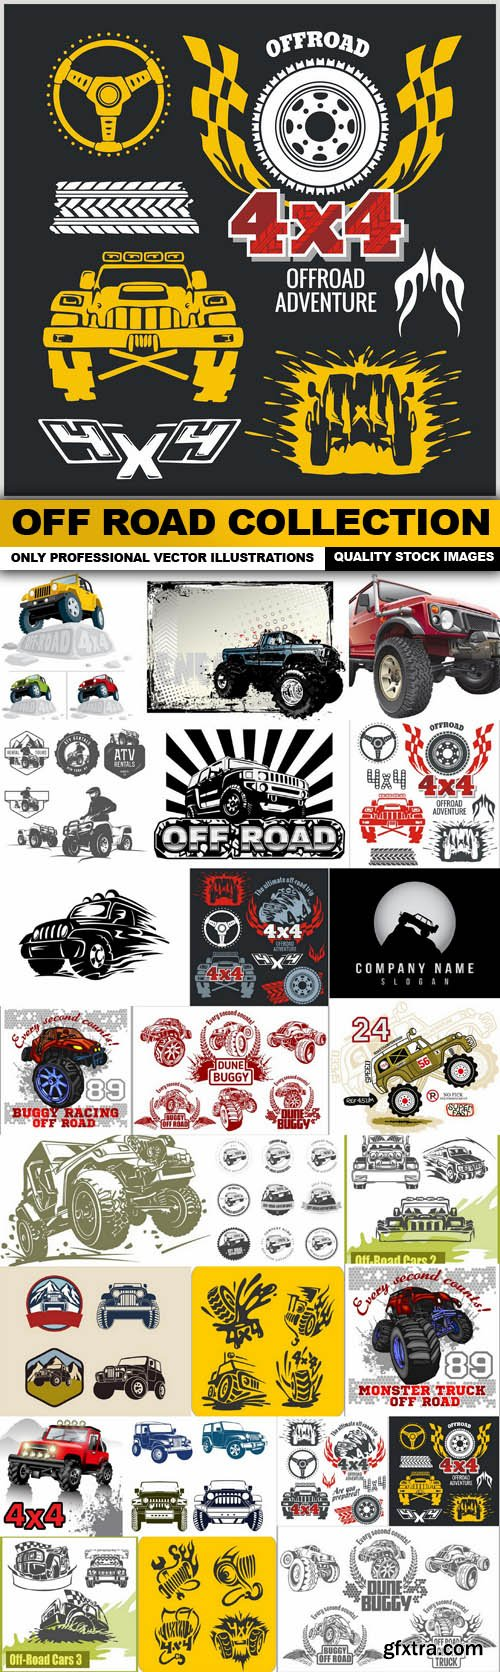 Off Road Collection - 25 Vector